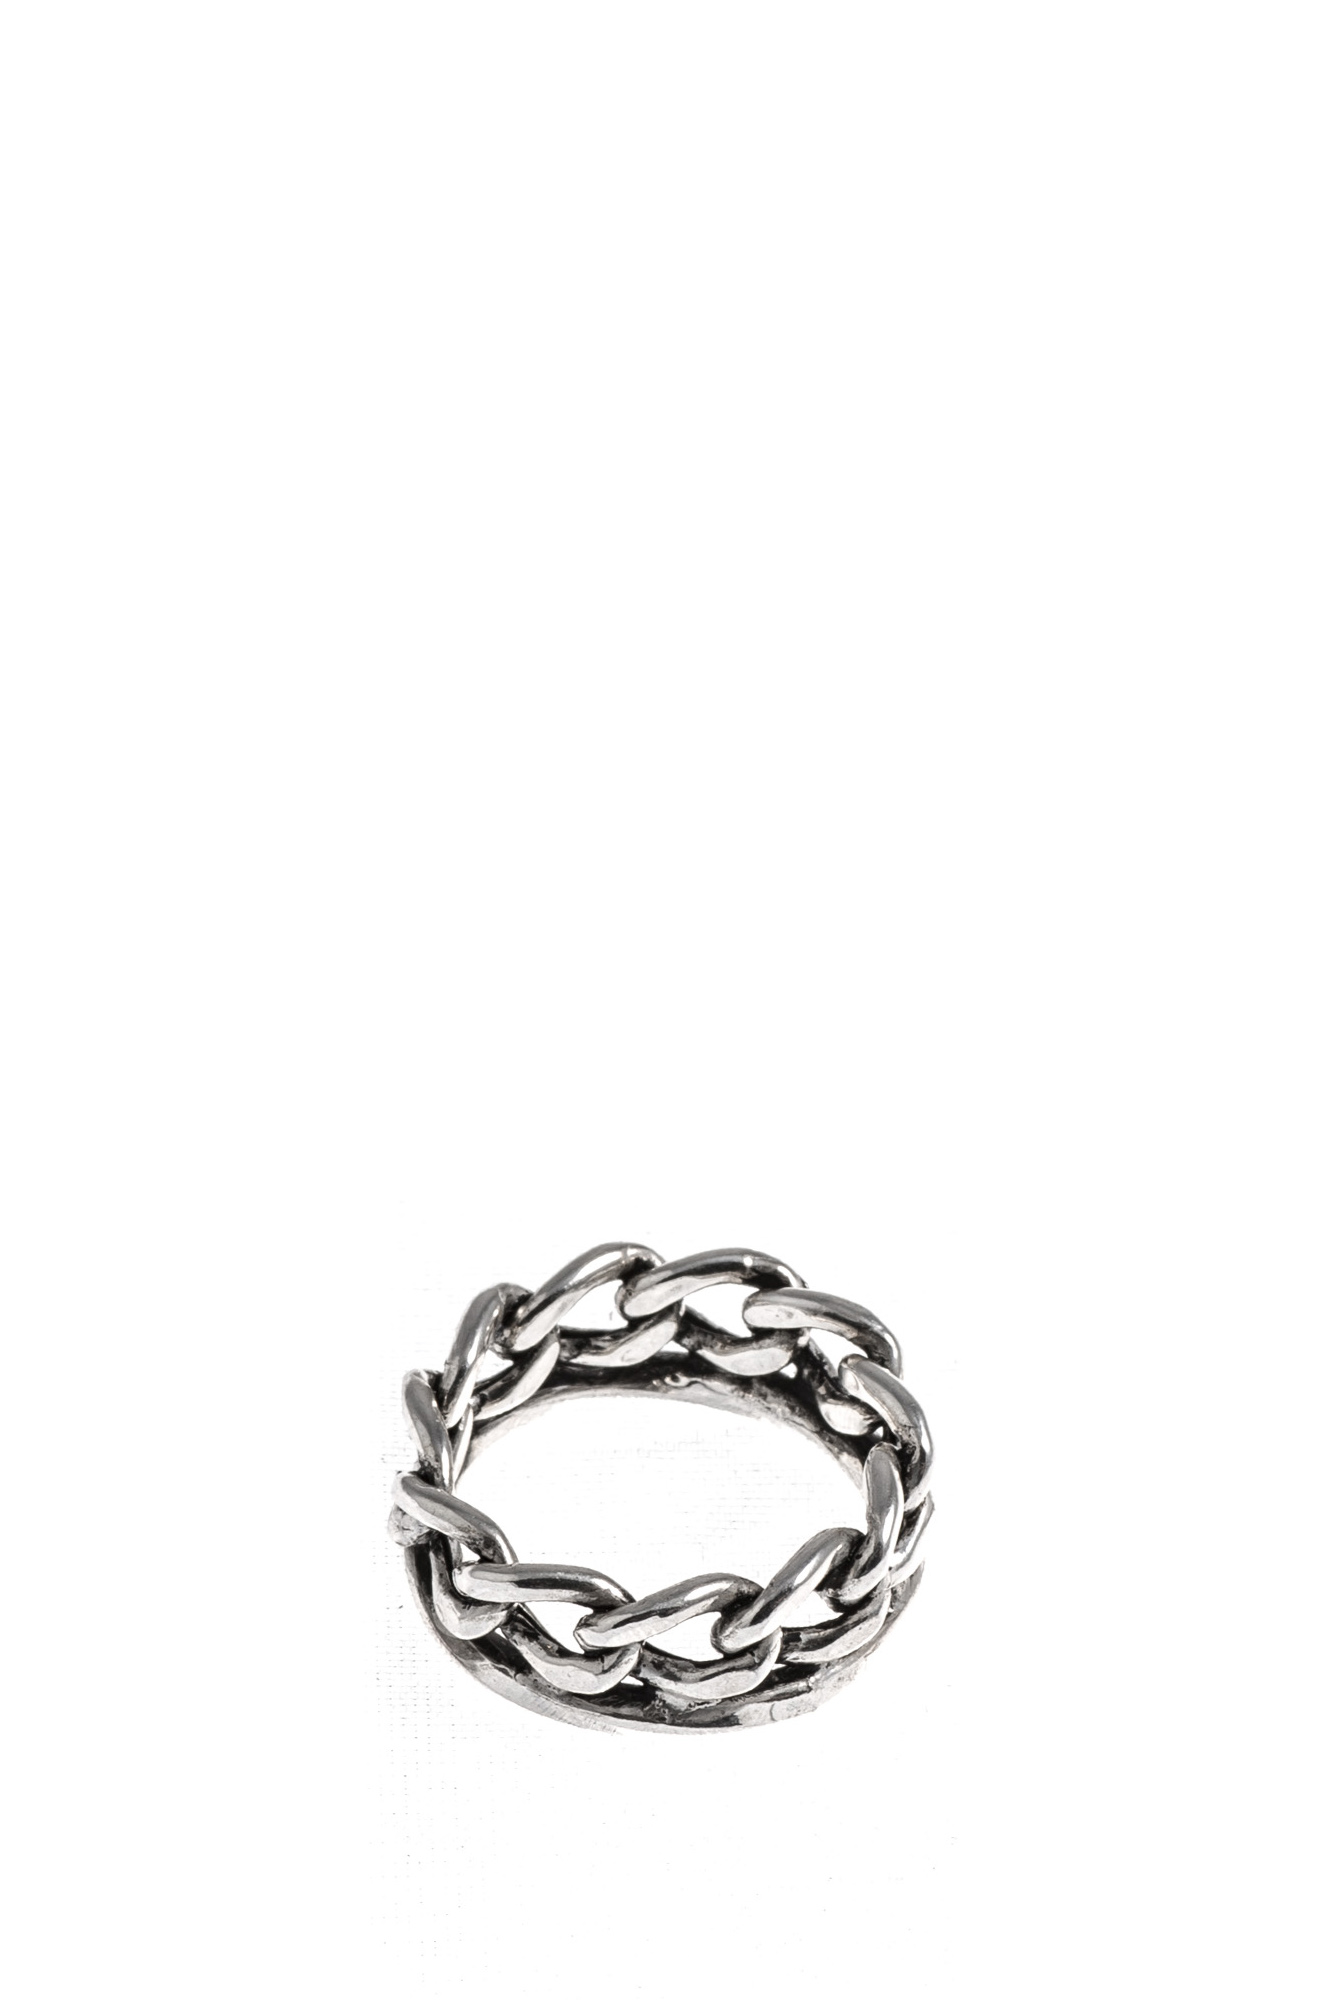 Giacomo Burroni - Silver Ring with Chain